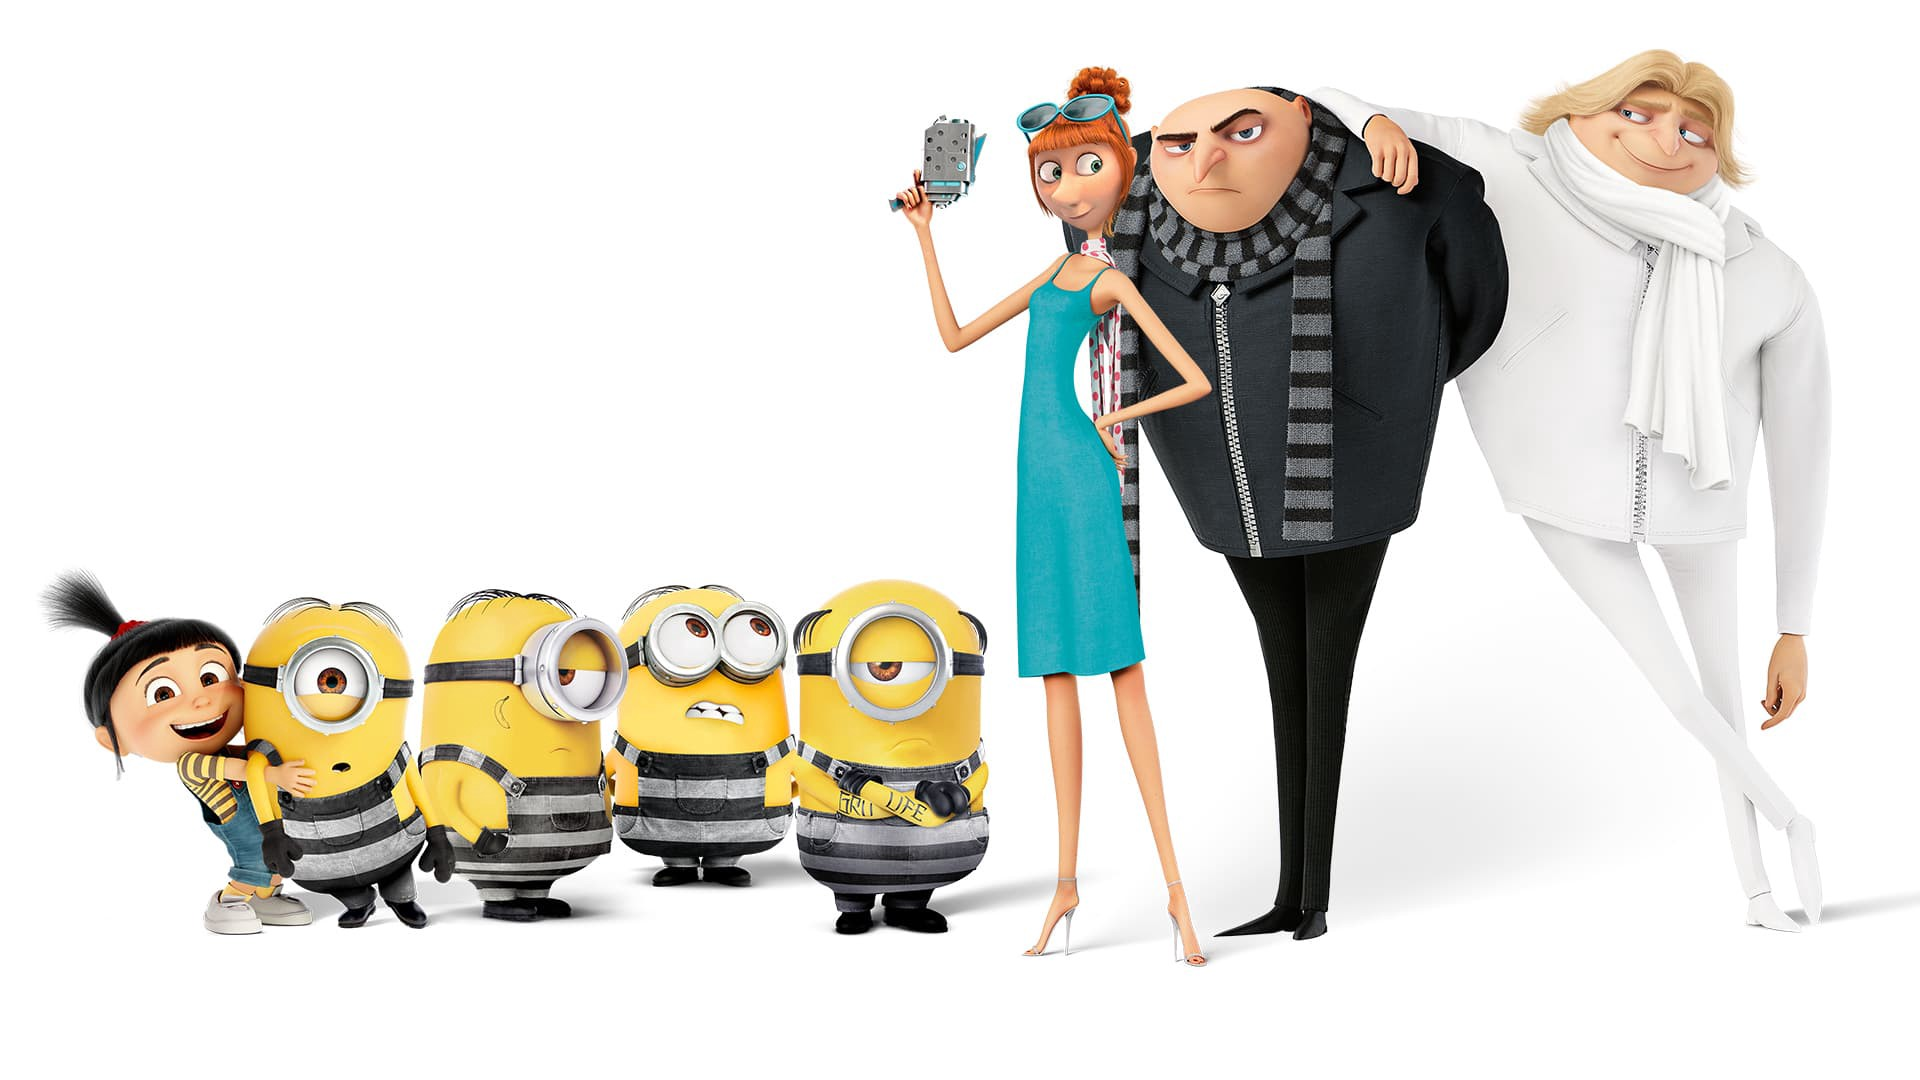 stream despicable me 3 online free